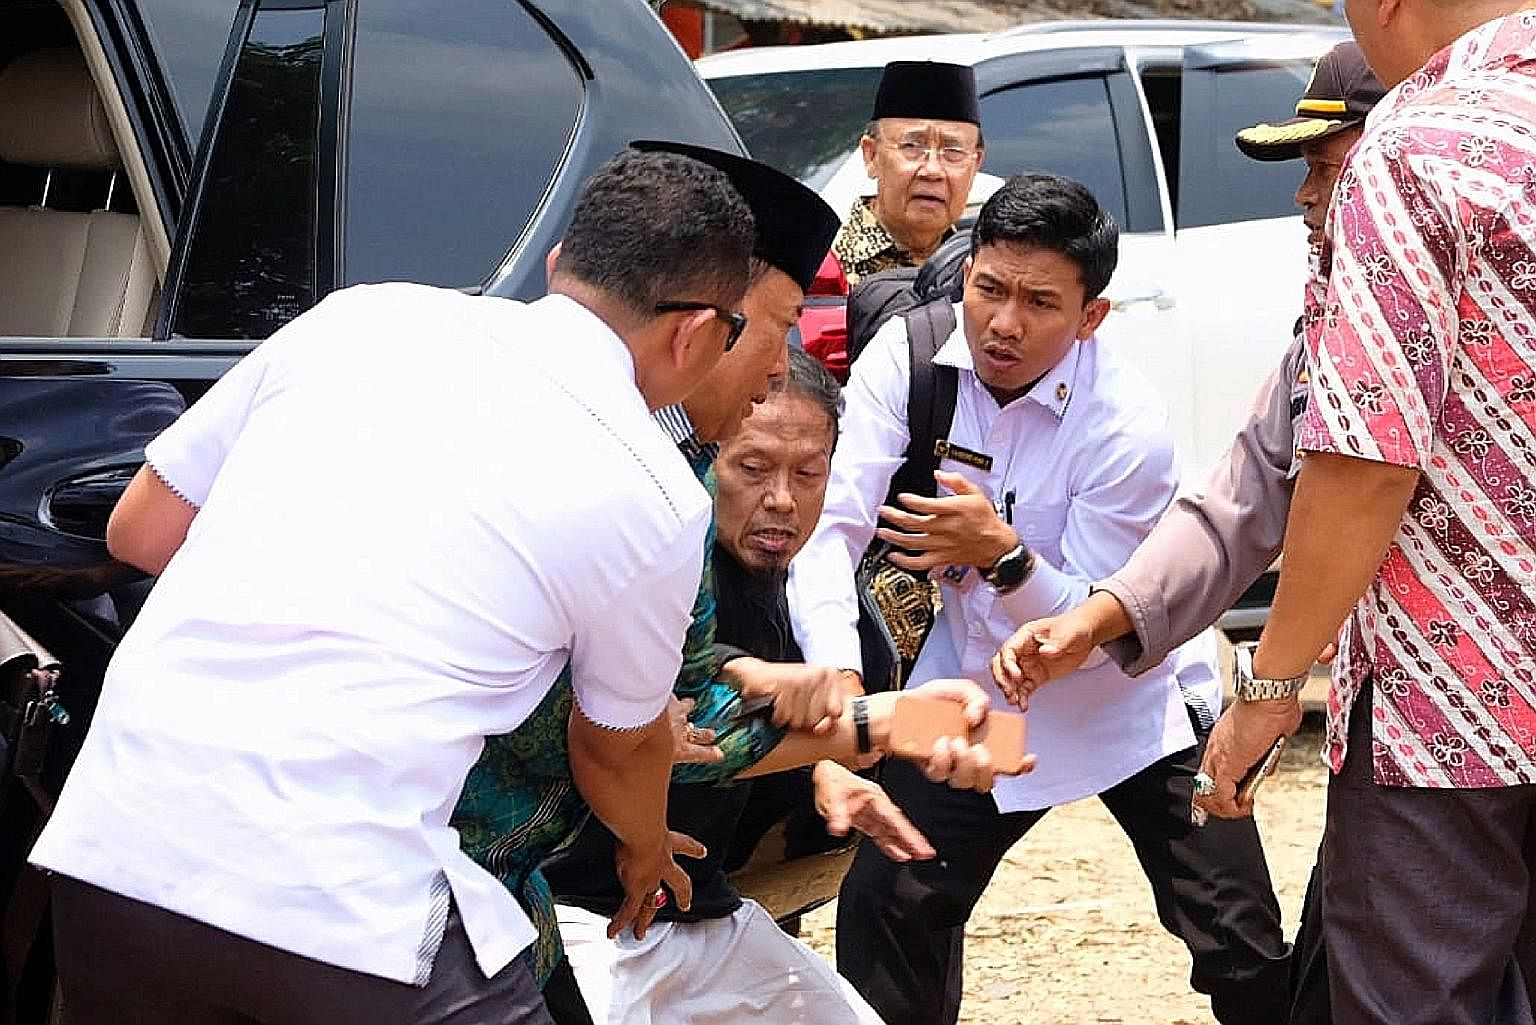 Indonesia's chief security minister Wiranto (in green) was yesterday stabbed in an attack by members of Jamaah Ansharut Daulah, the authorities said. The group is linked to the Islamic State in Iraq and Syria terror network. Mr Wiranto, the Coordinat